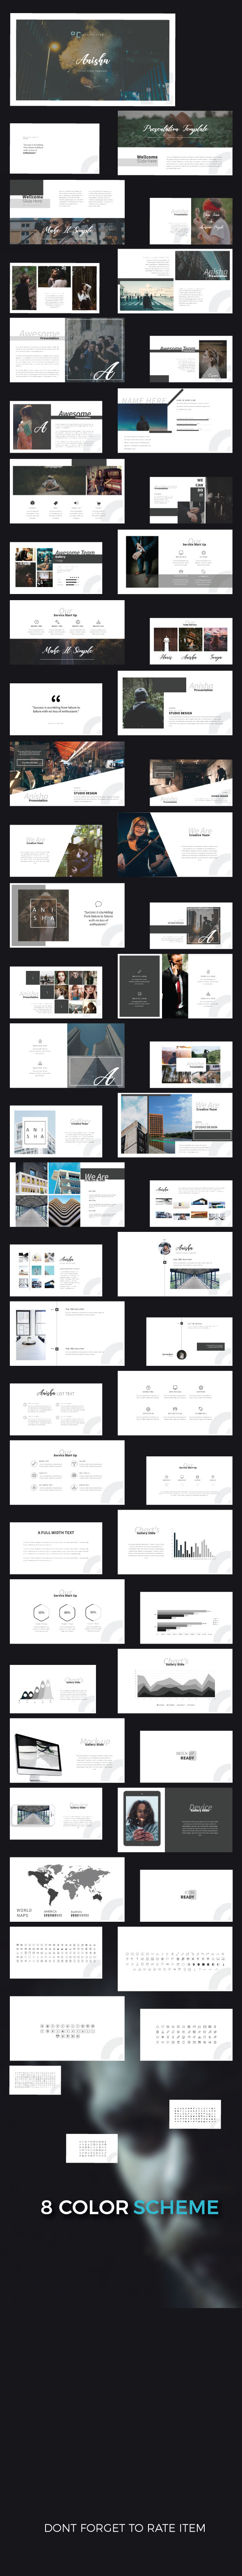 GraphicRiver Anisha Google Slide 20720608